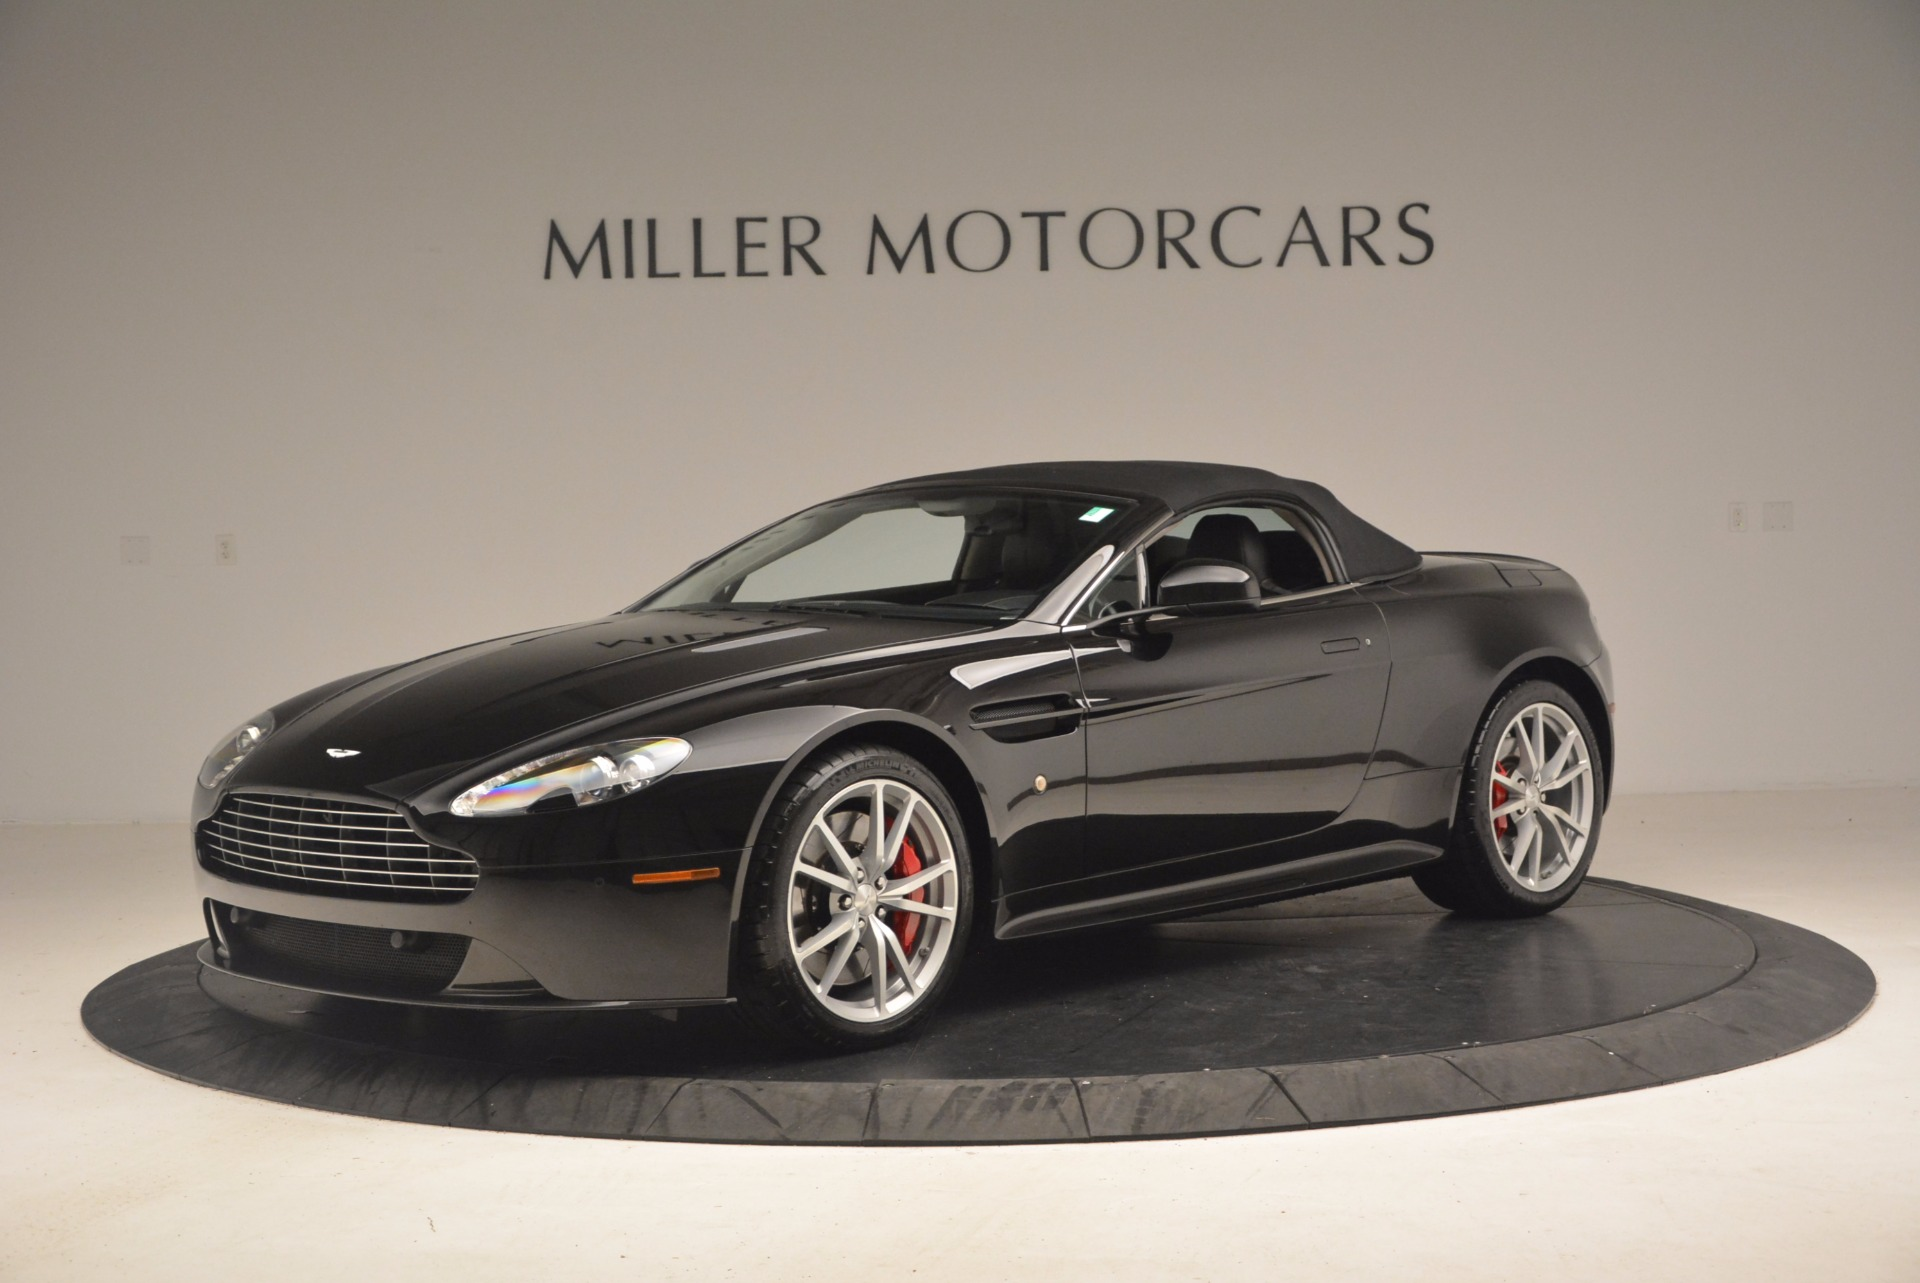 Used 2012 Aston Martin V8 Vantage S Roadster For Sale In Westport, CT 1181_p14